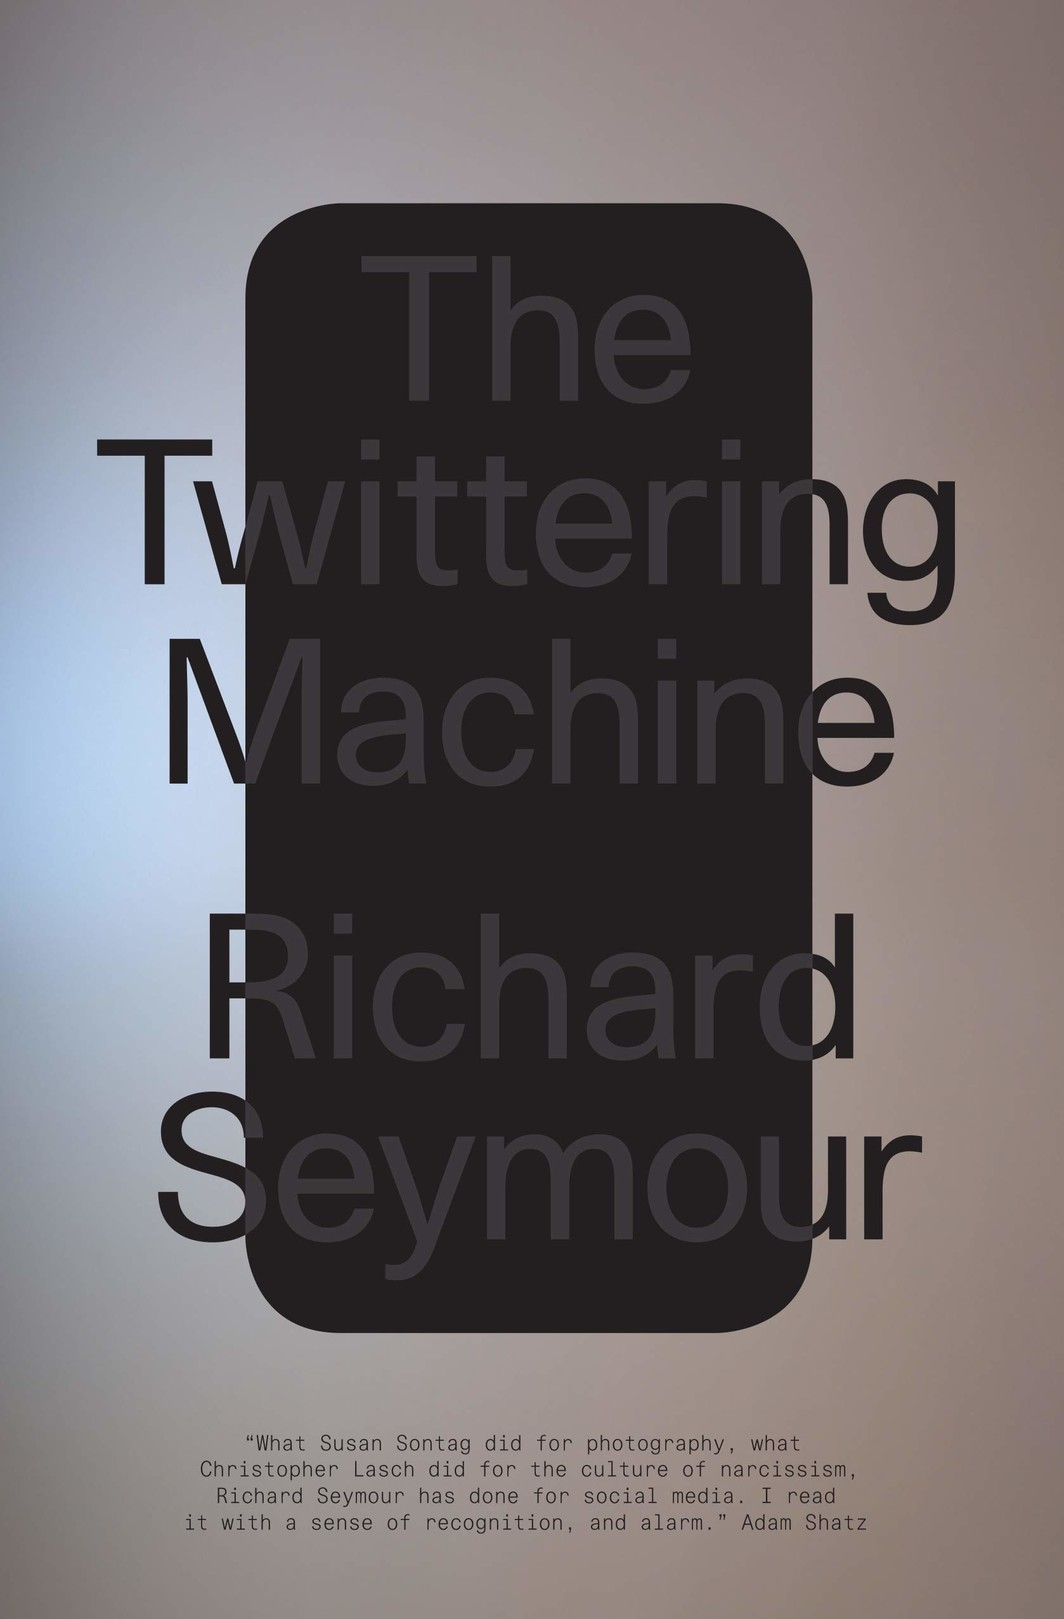 The cover of The Twittering Machine